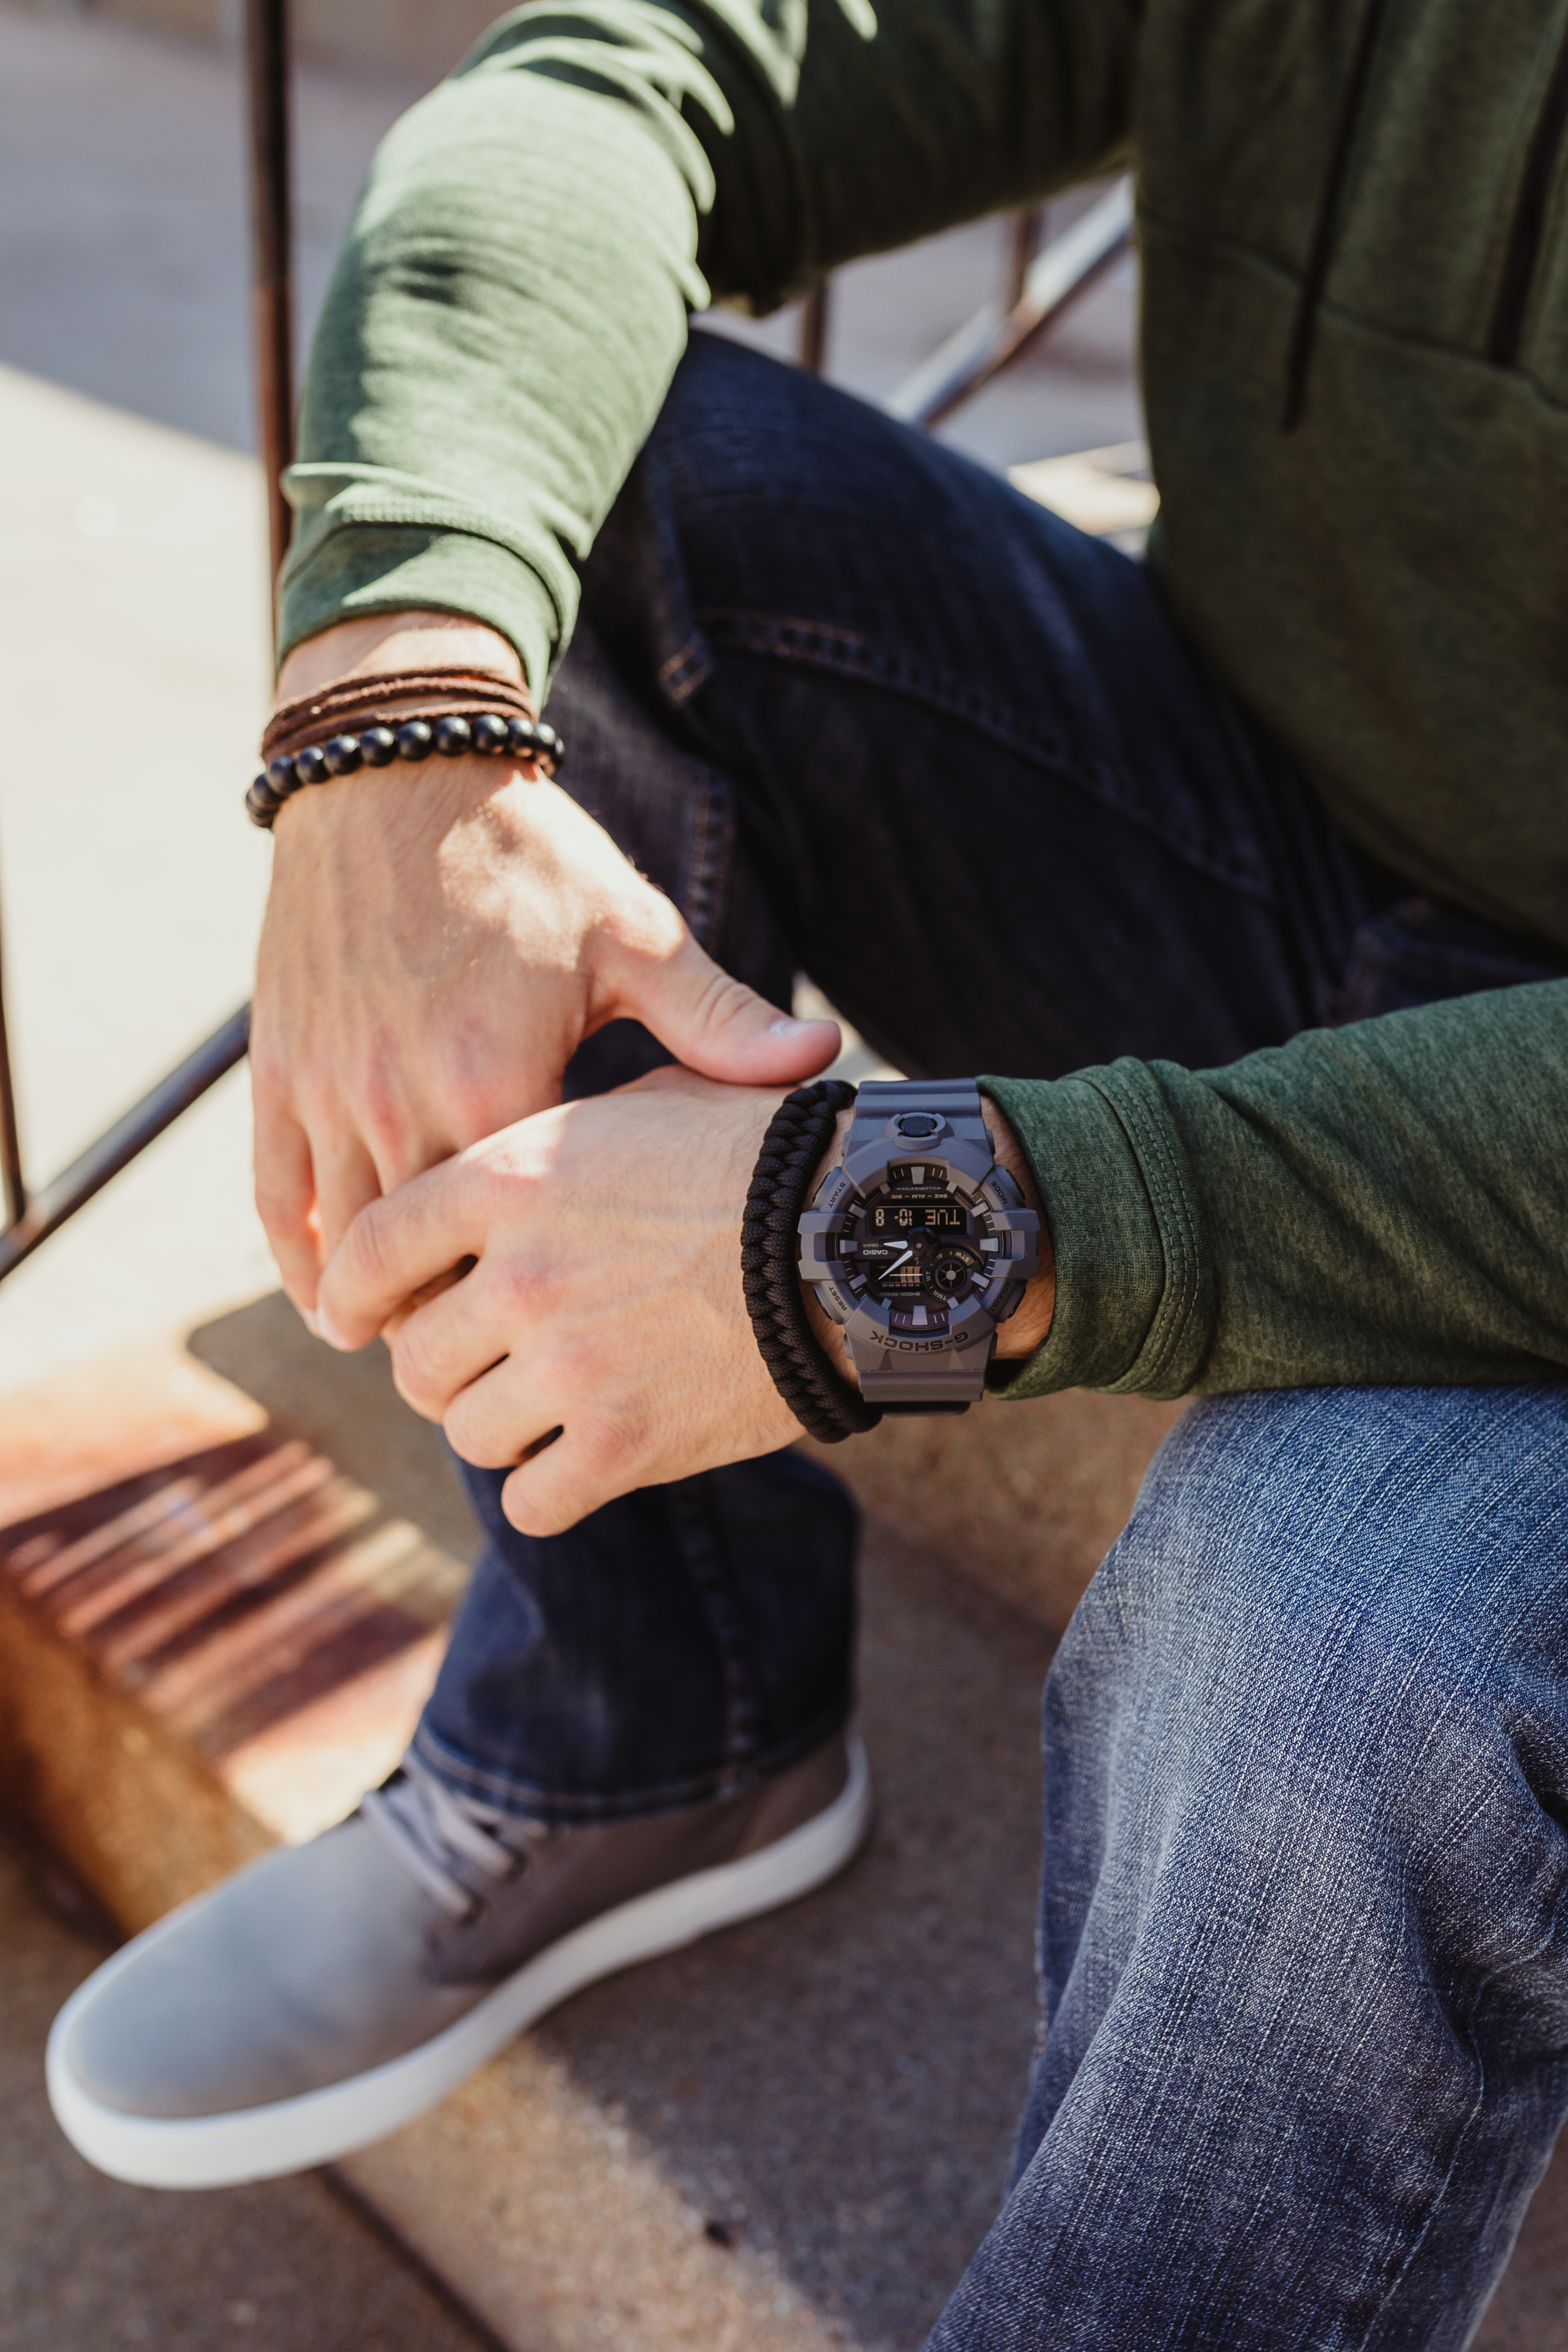 the newest every day staple can be found at the wrist